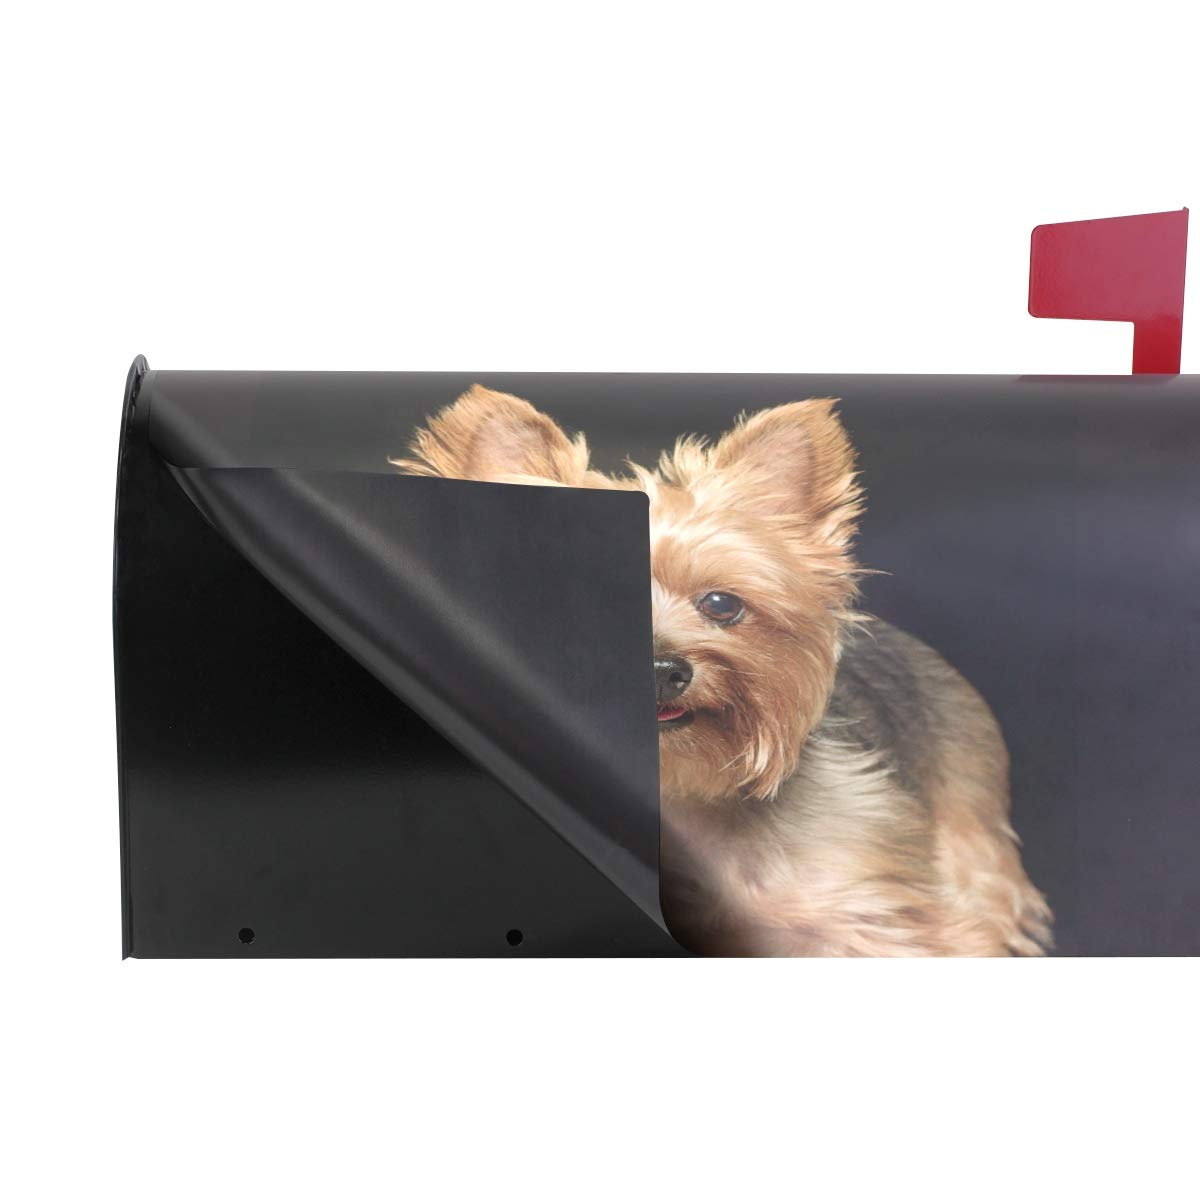 WOOR Cute Yorkie Dog Magnetic Mailbox Cover Standard Size-18x 20.8